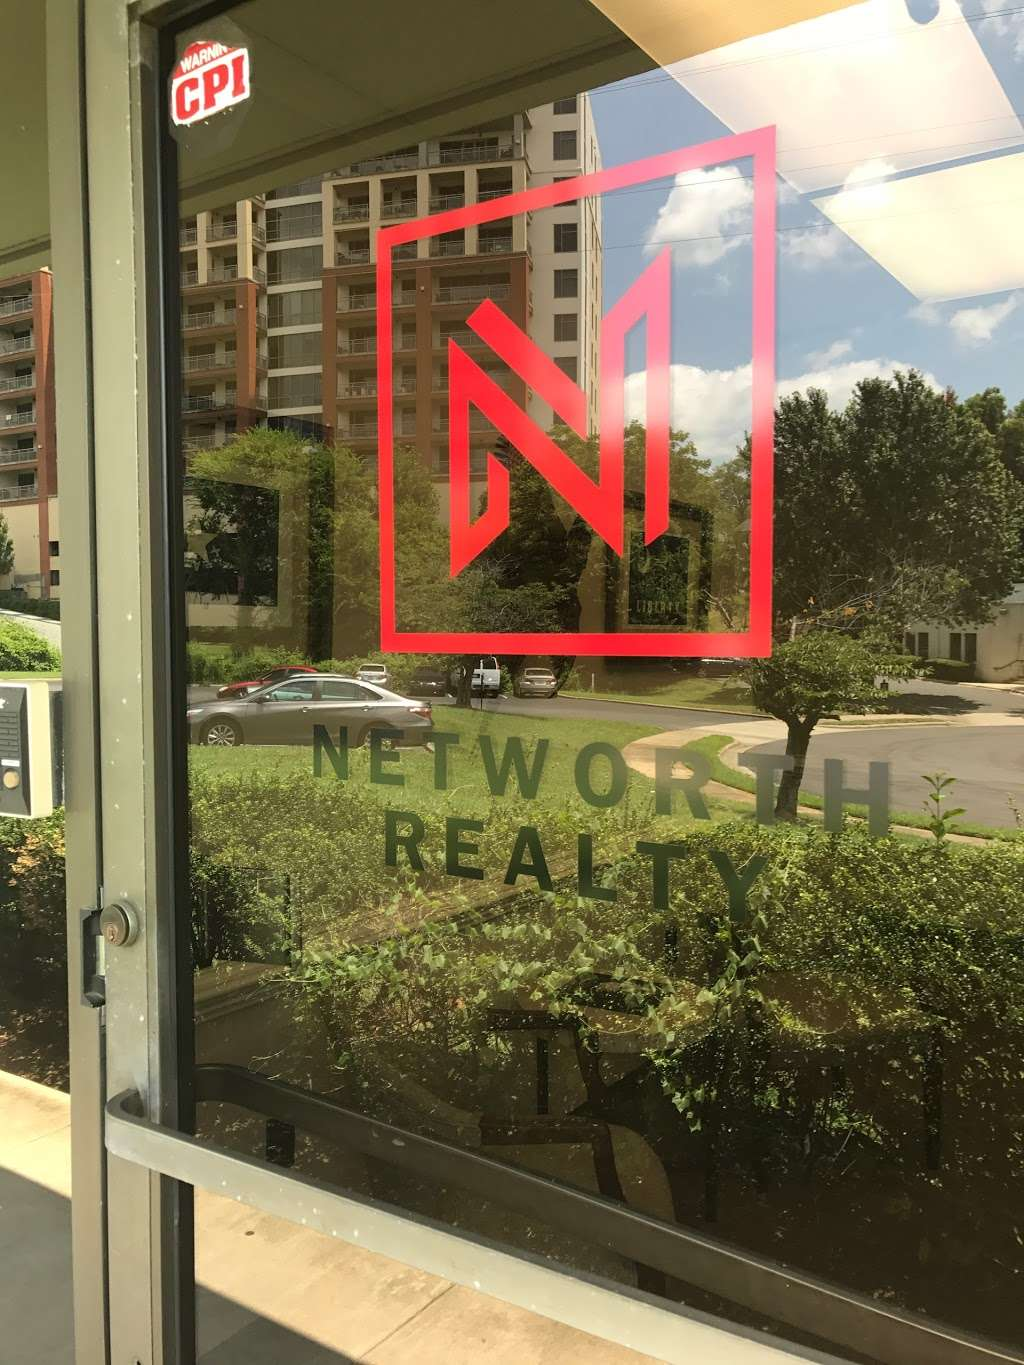 NetWorth Realty of Charlotte, LLC - real estate agency  | Photo 1 of 3 | Address: 821 Baxter St Suite 312, Charlotte, NC 28202, USA | Phone: (980) 498-1698